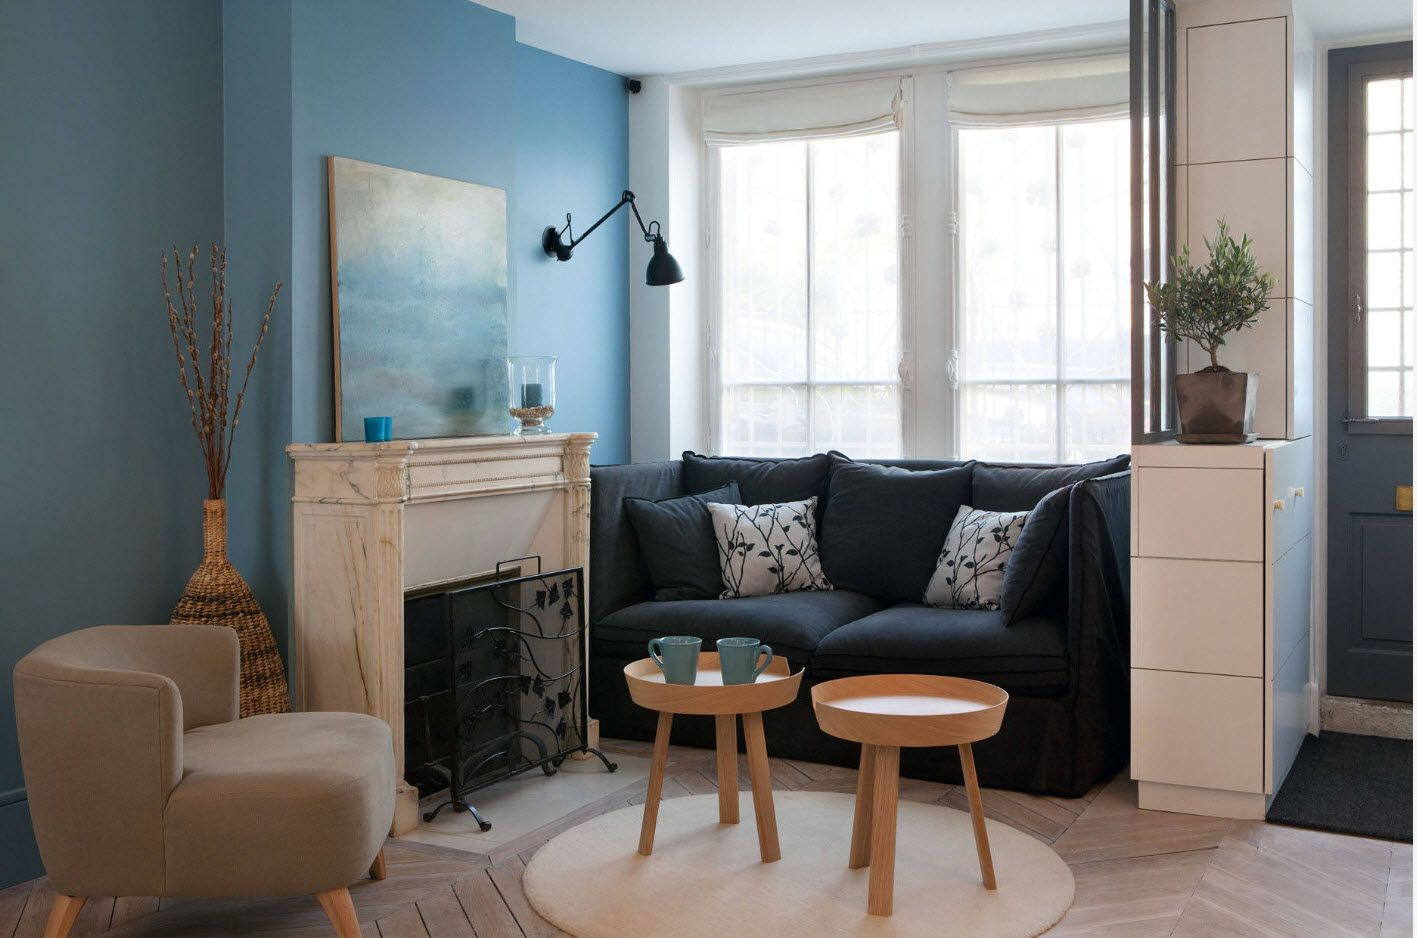 Modern design in the tight living room with blue painted walls